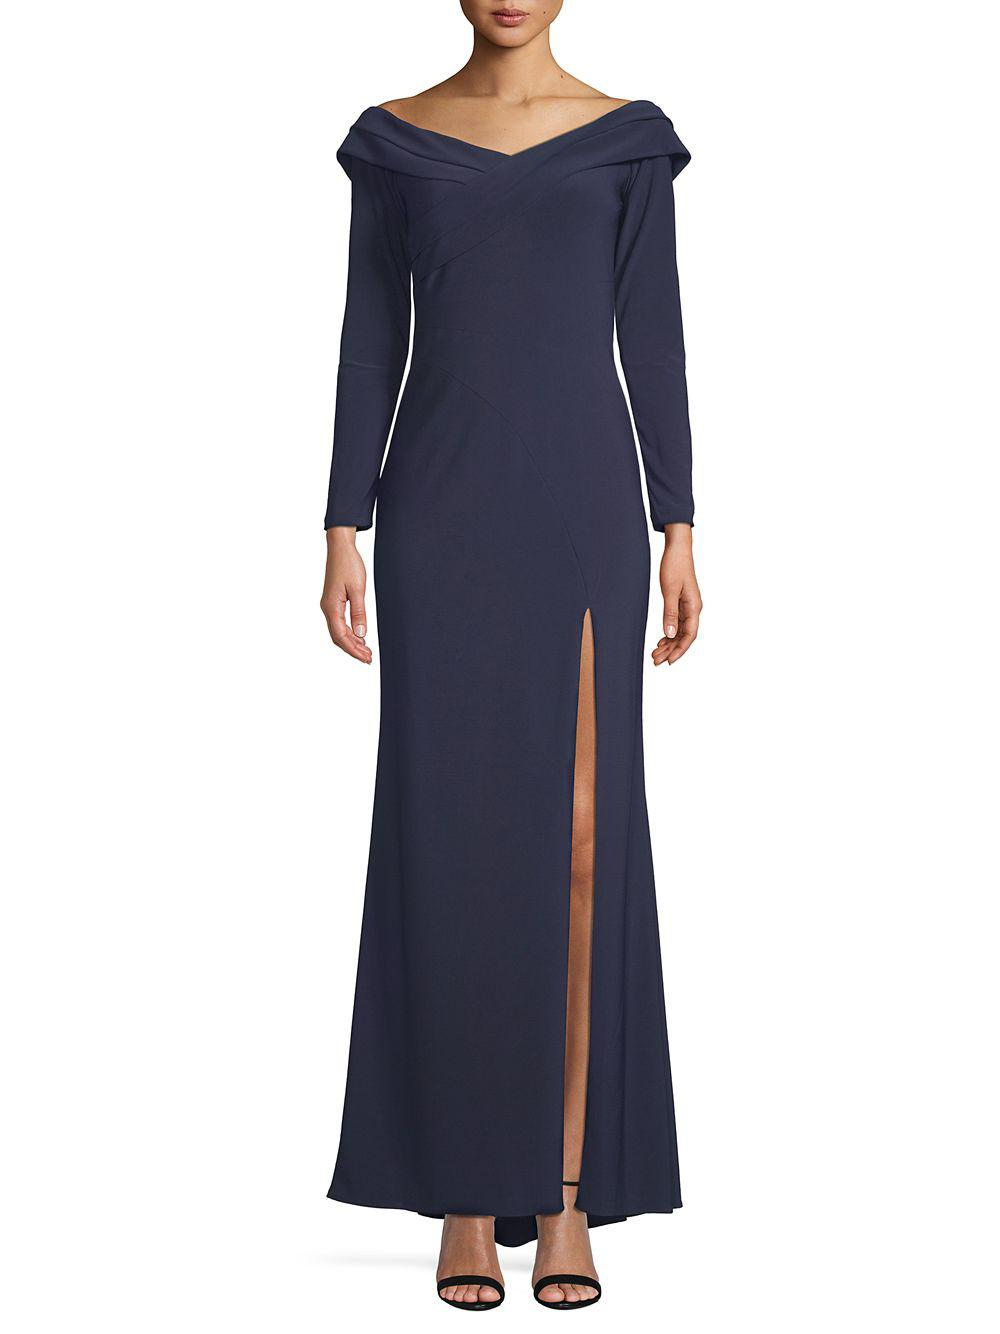 5fc7356d Lyst - Xscape Pleated Off-the-shoulder Gown in Blue